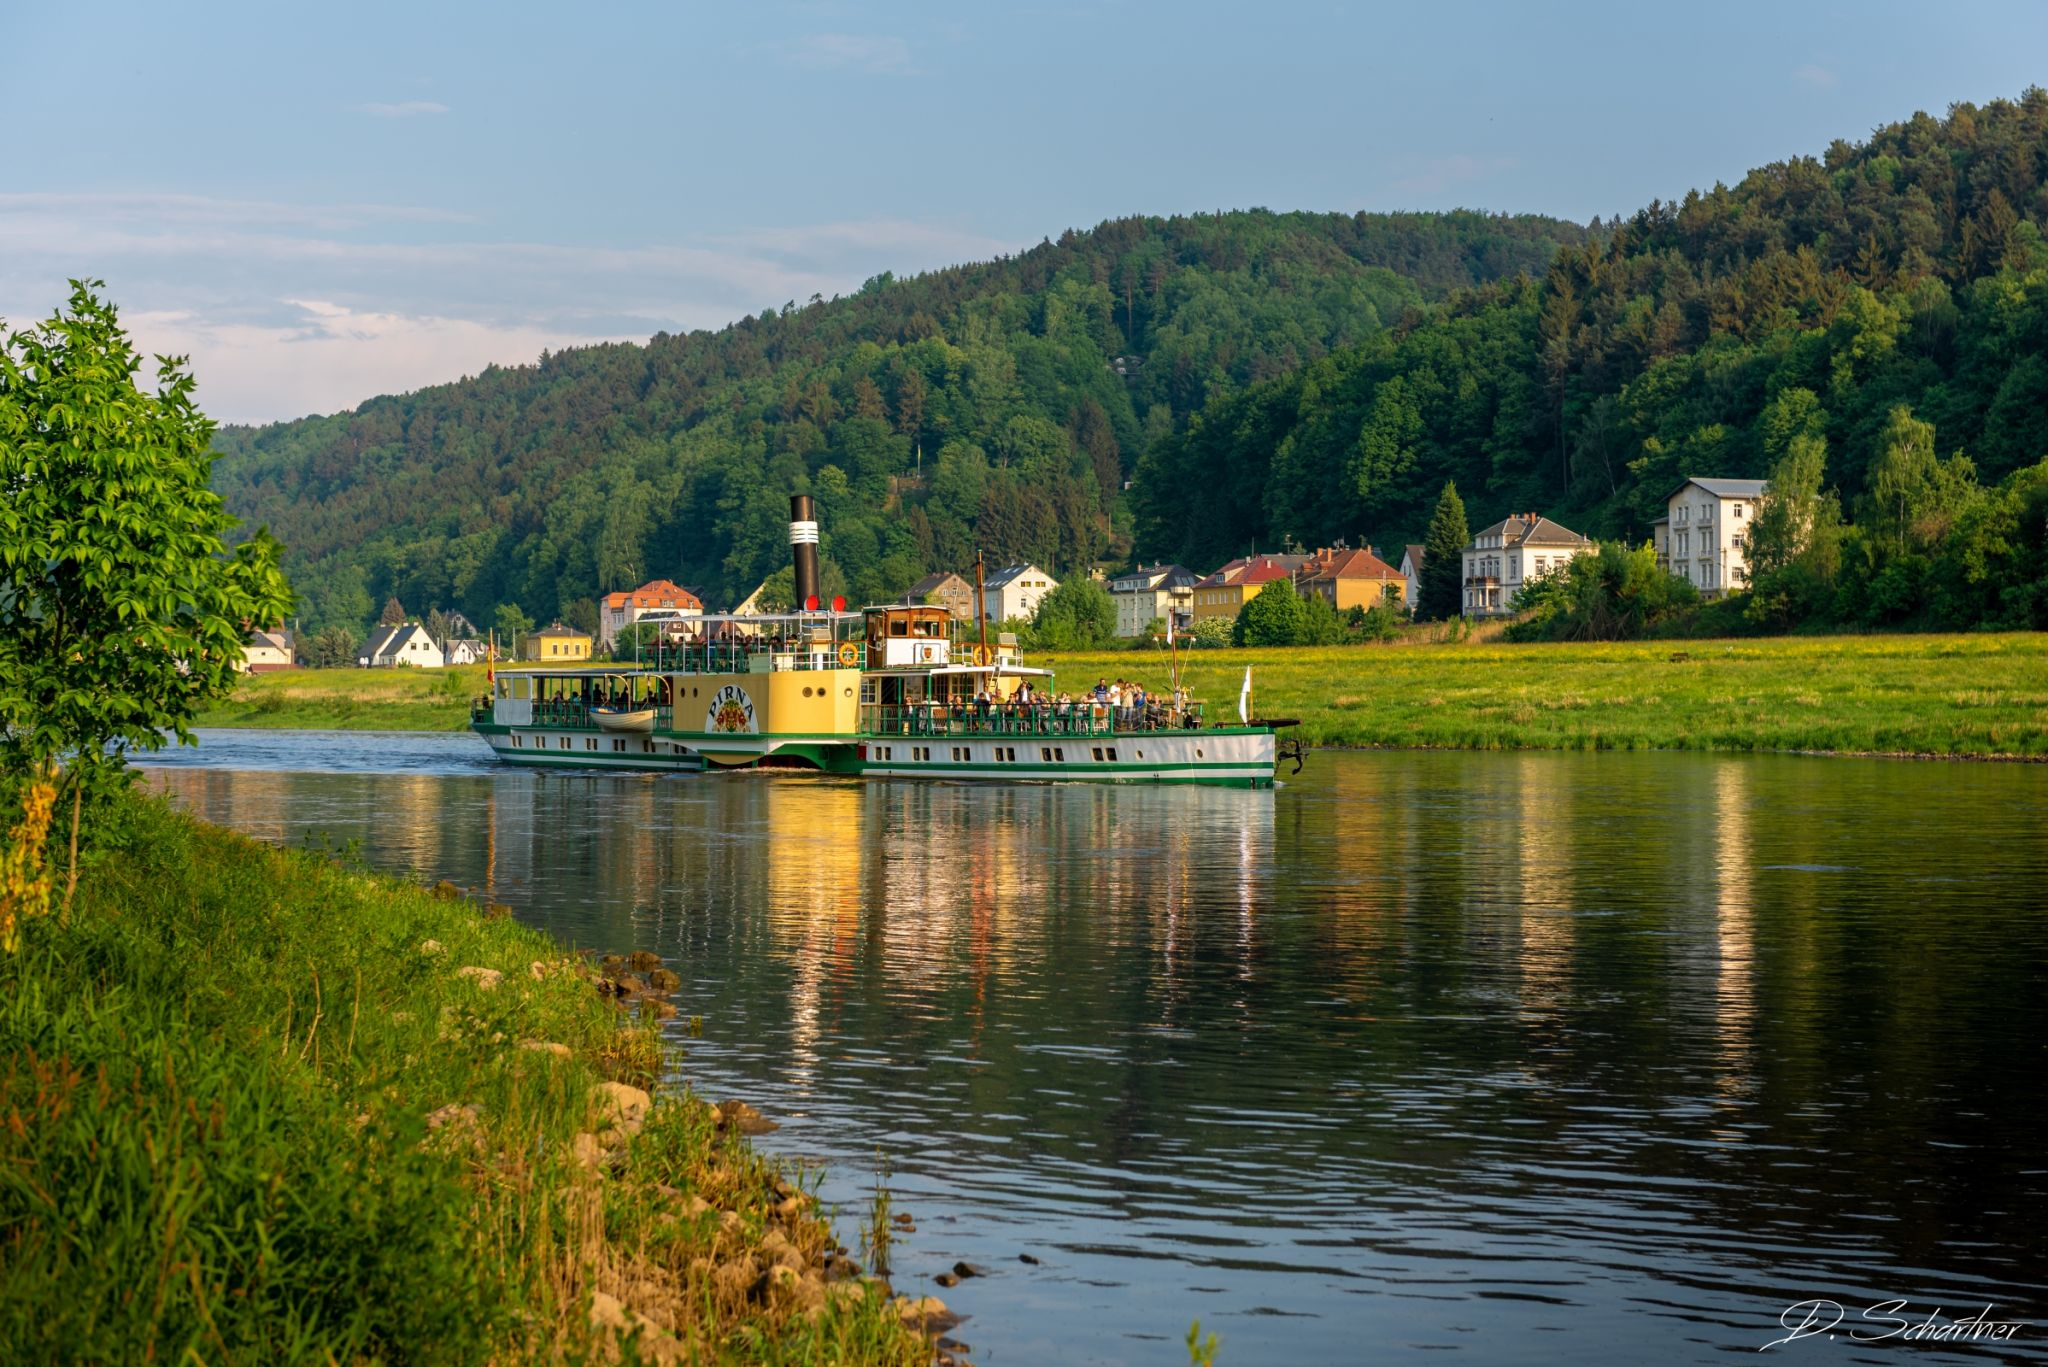 Ferry on the Elbe, Germany